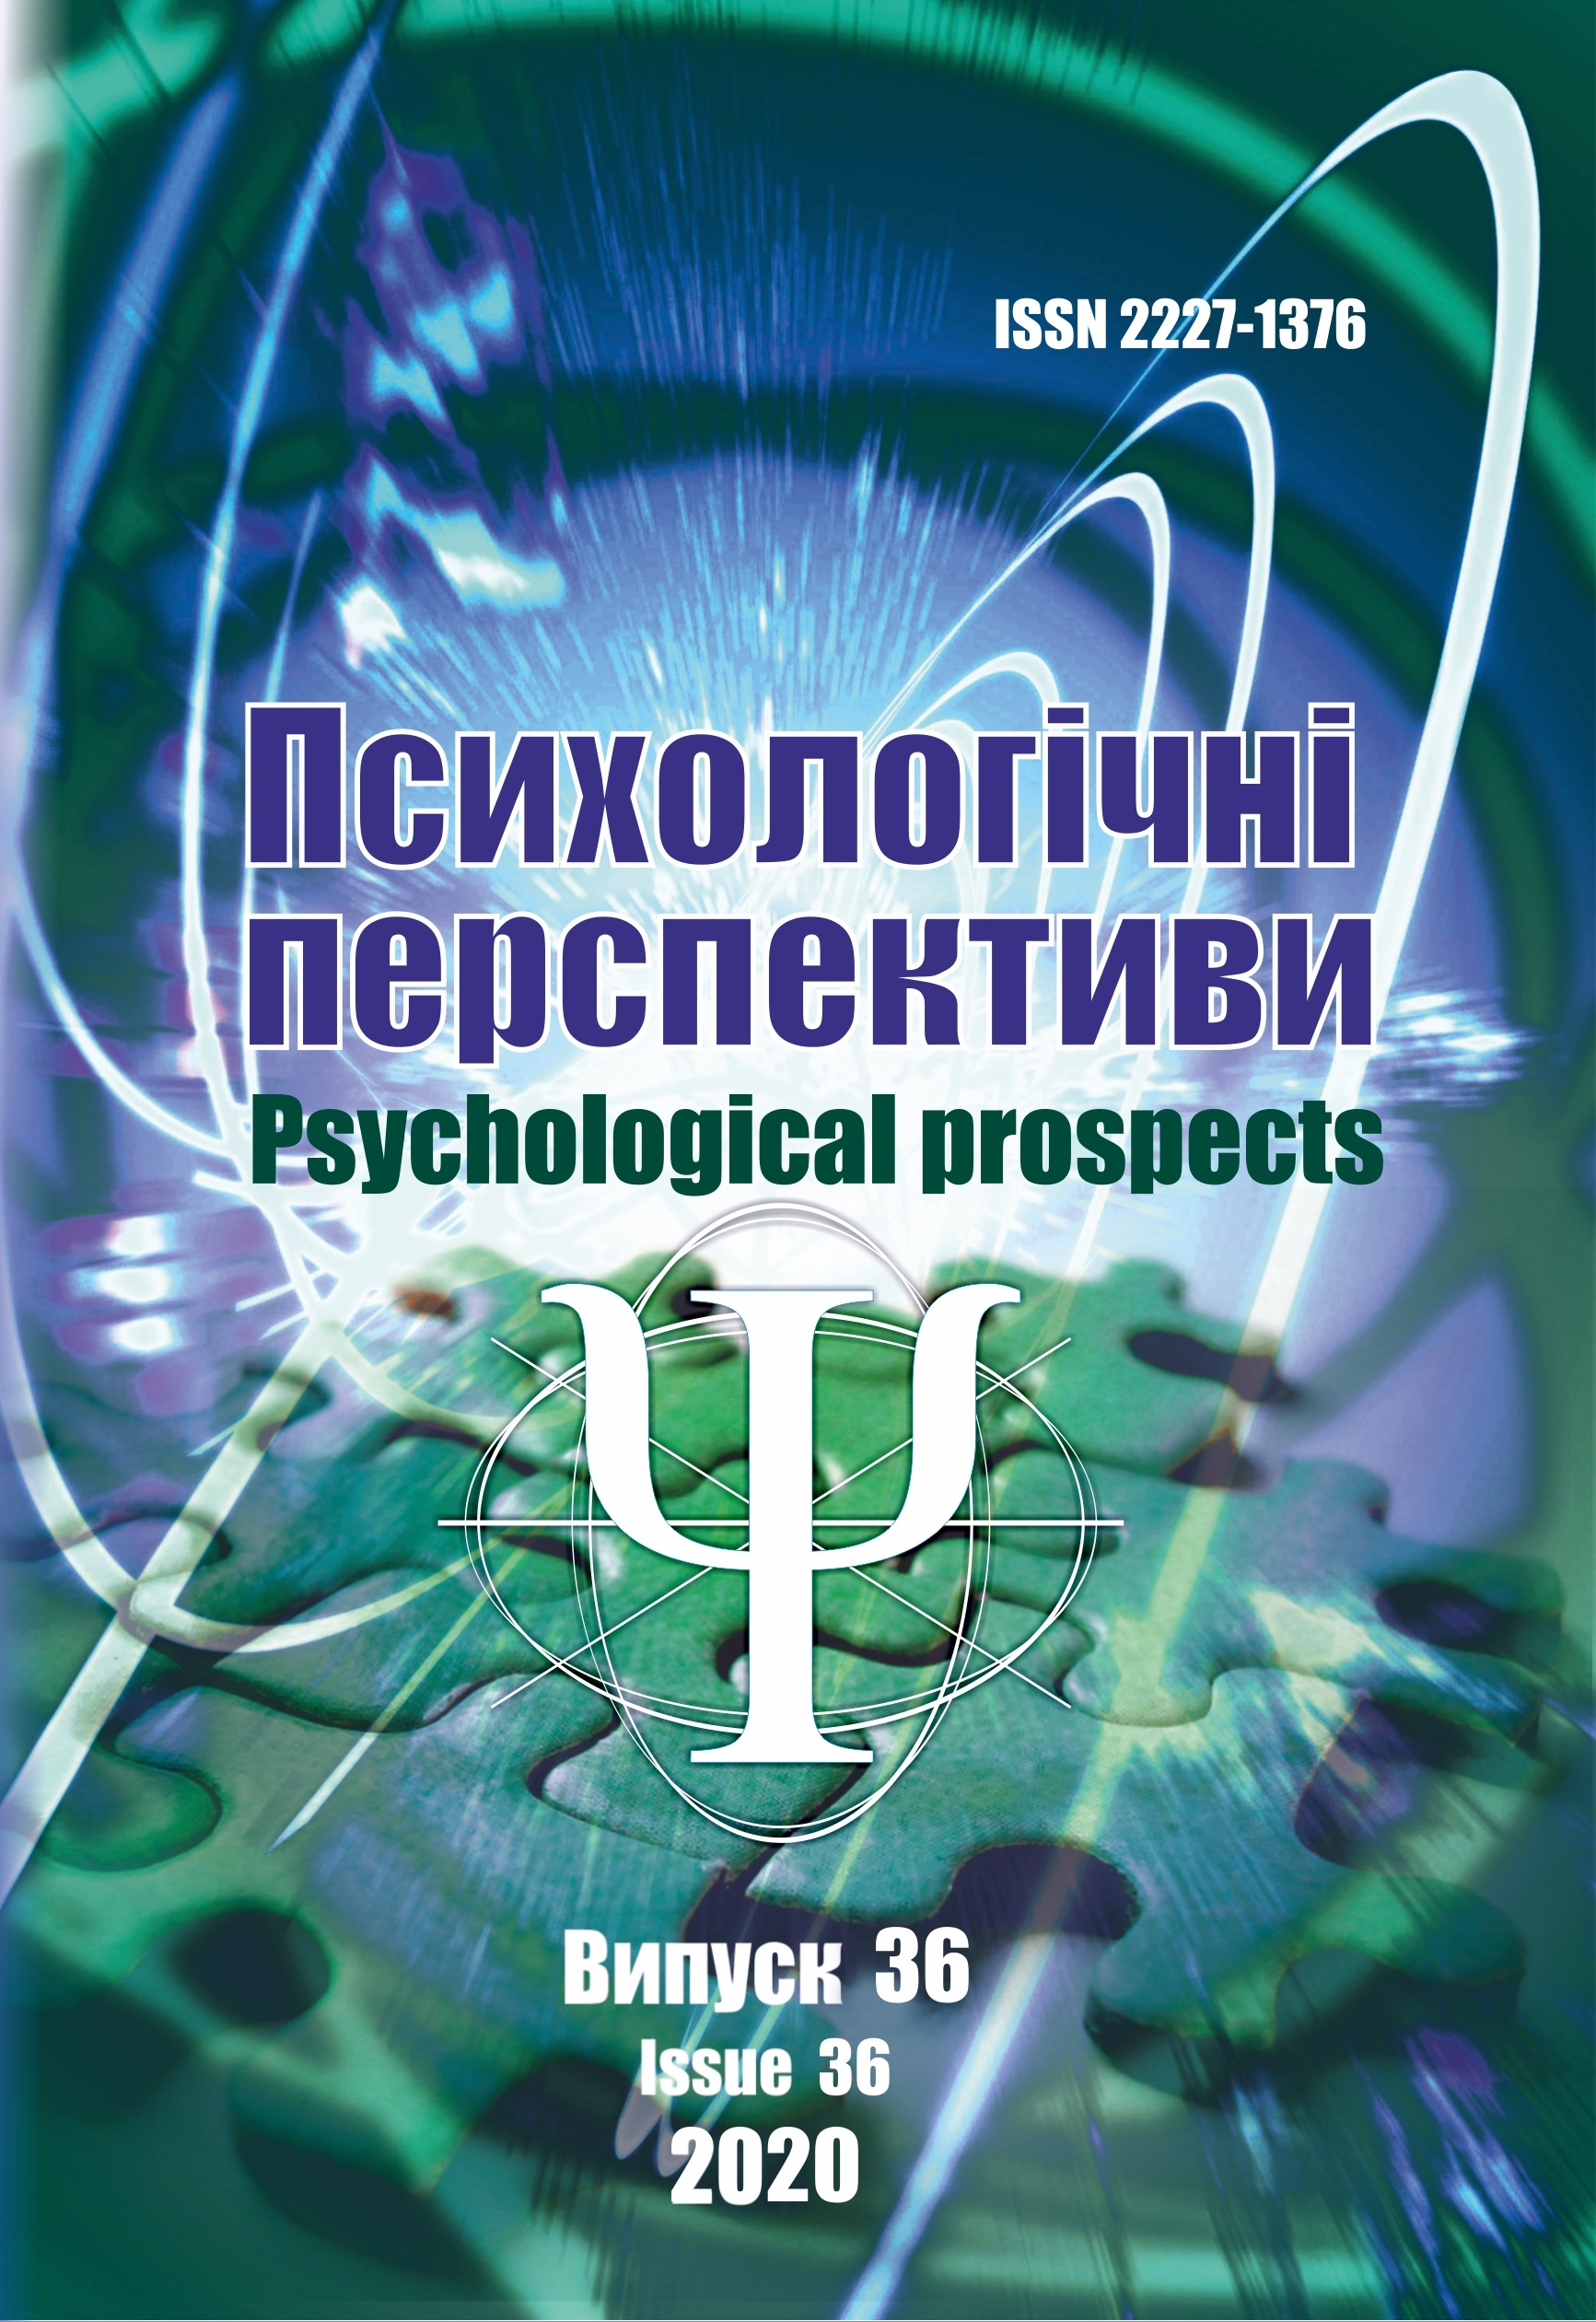 View No. 36 (2020): Psychological Prospects Journal